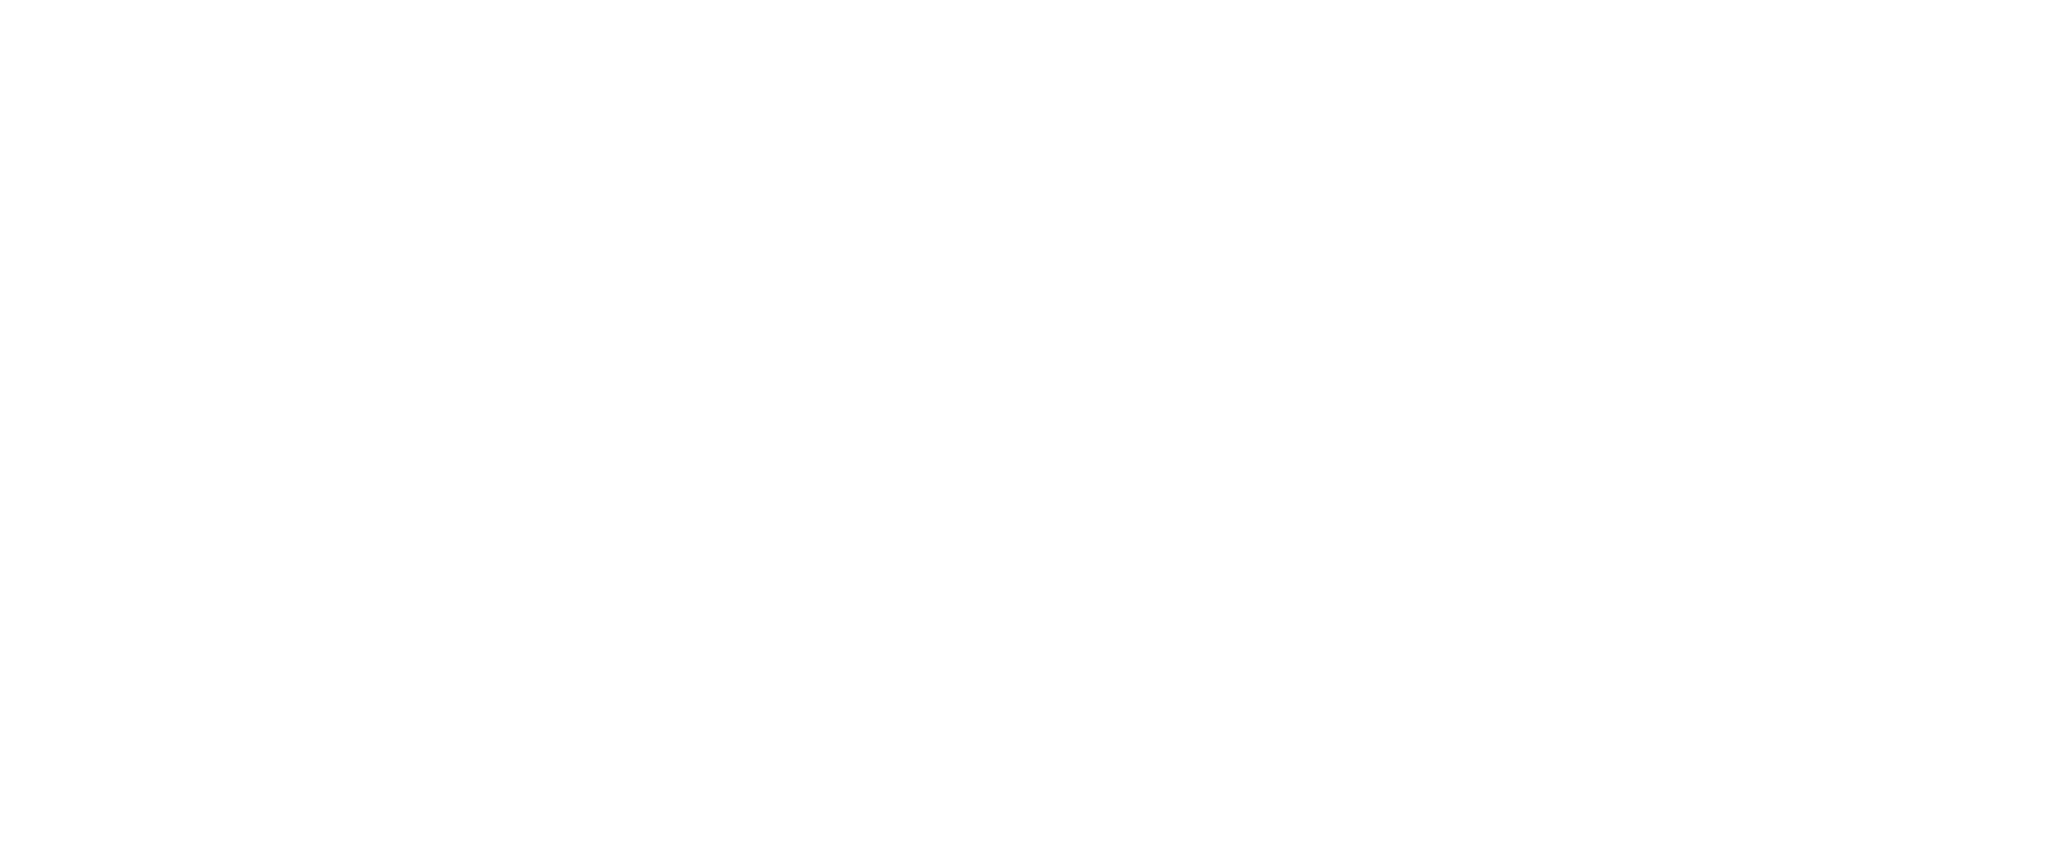 http://byronwritersfestival.com/wp-content/uploads/2017/04/ArtsNSW_website_logo.png